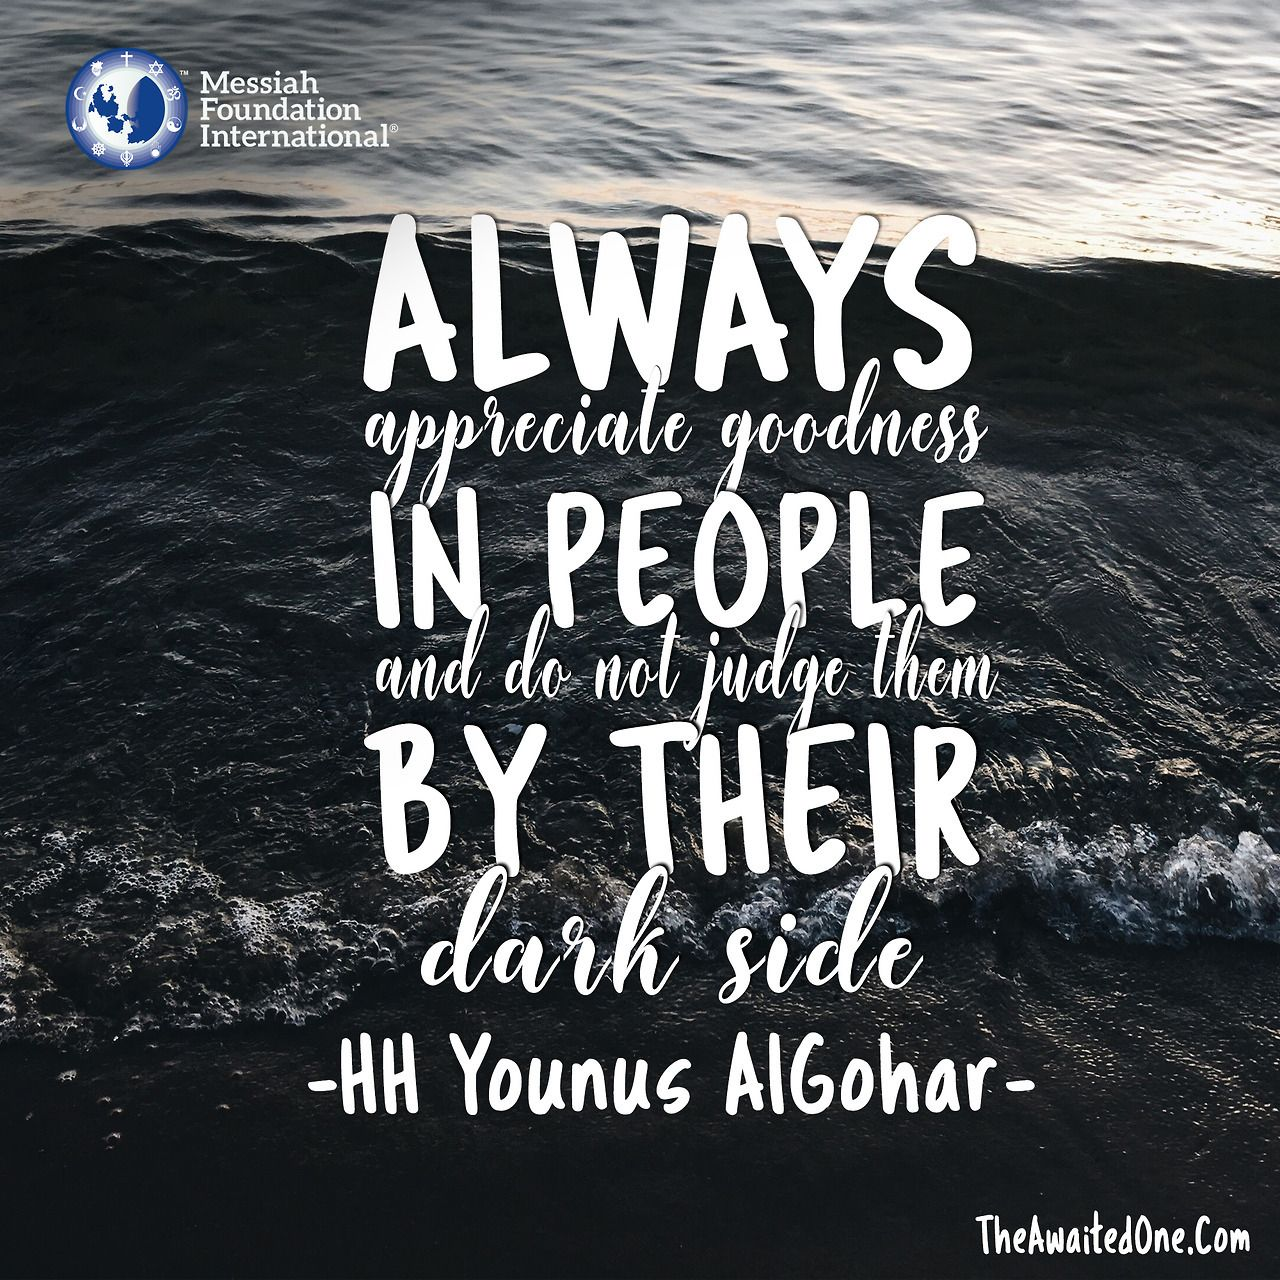 'Always appreciate goodness in people and do not judge them by their dark side.' - Younus AlGohar